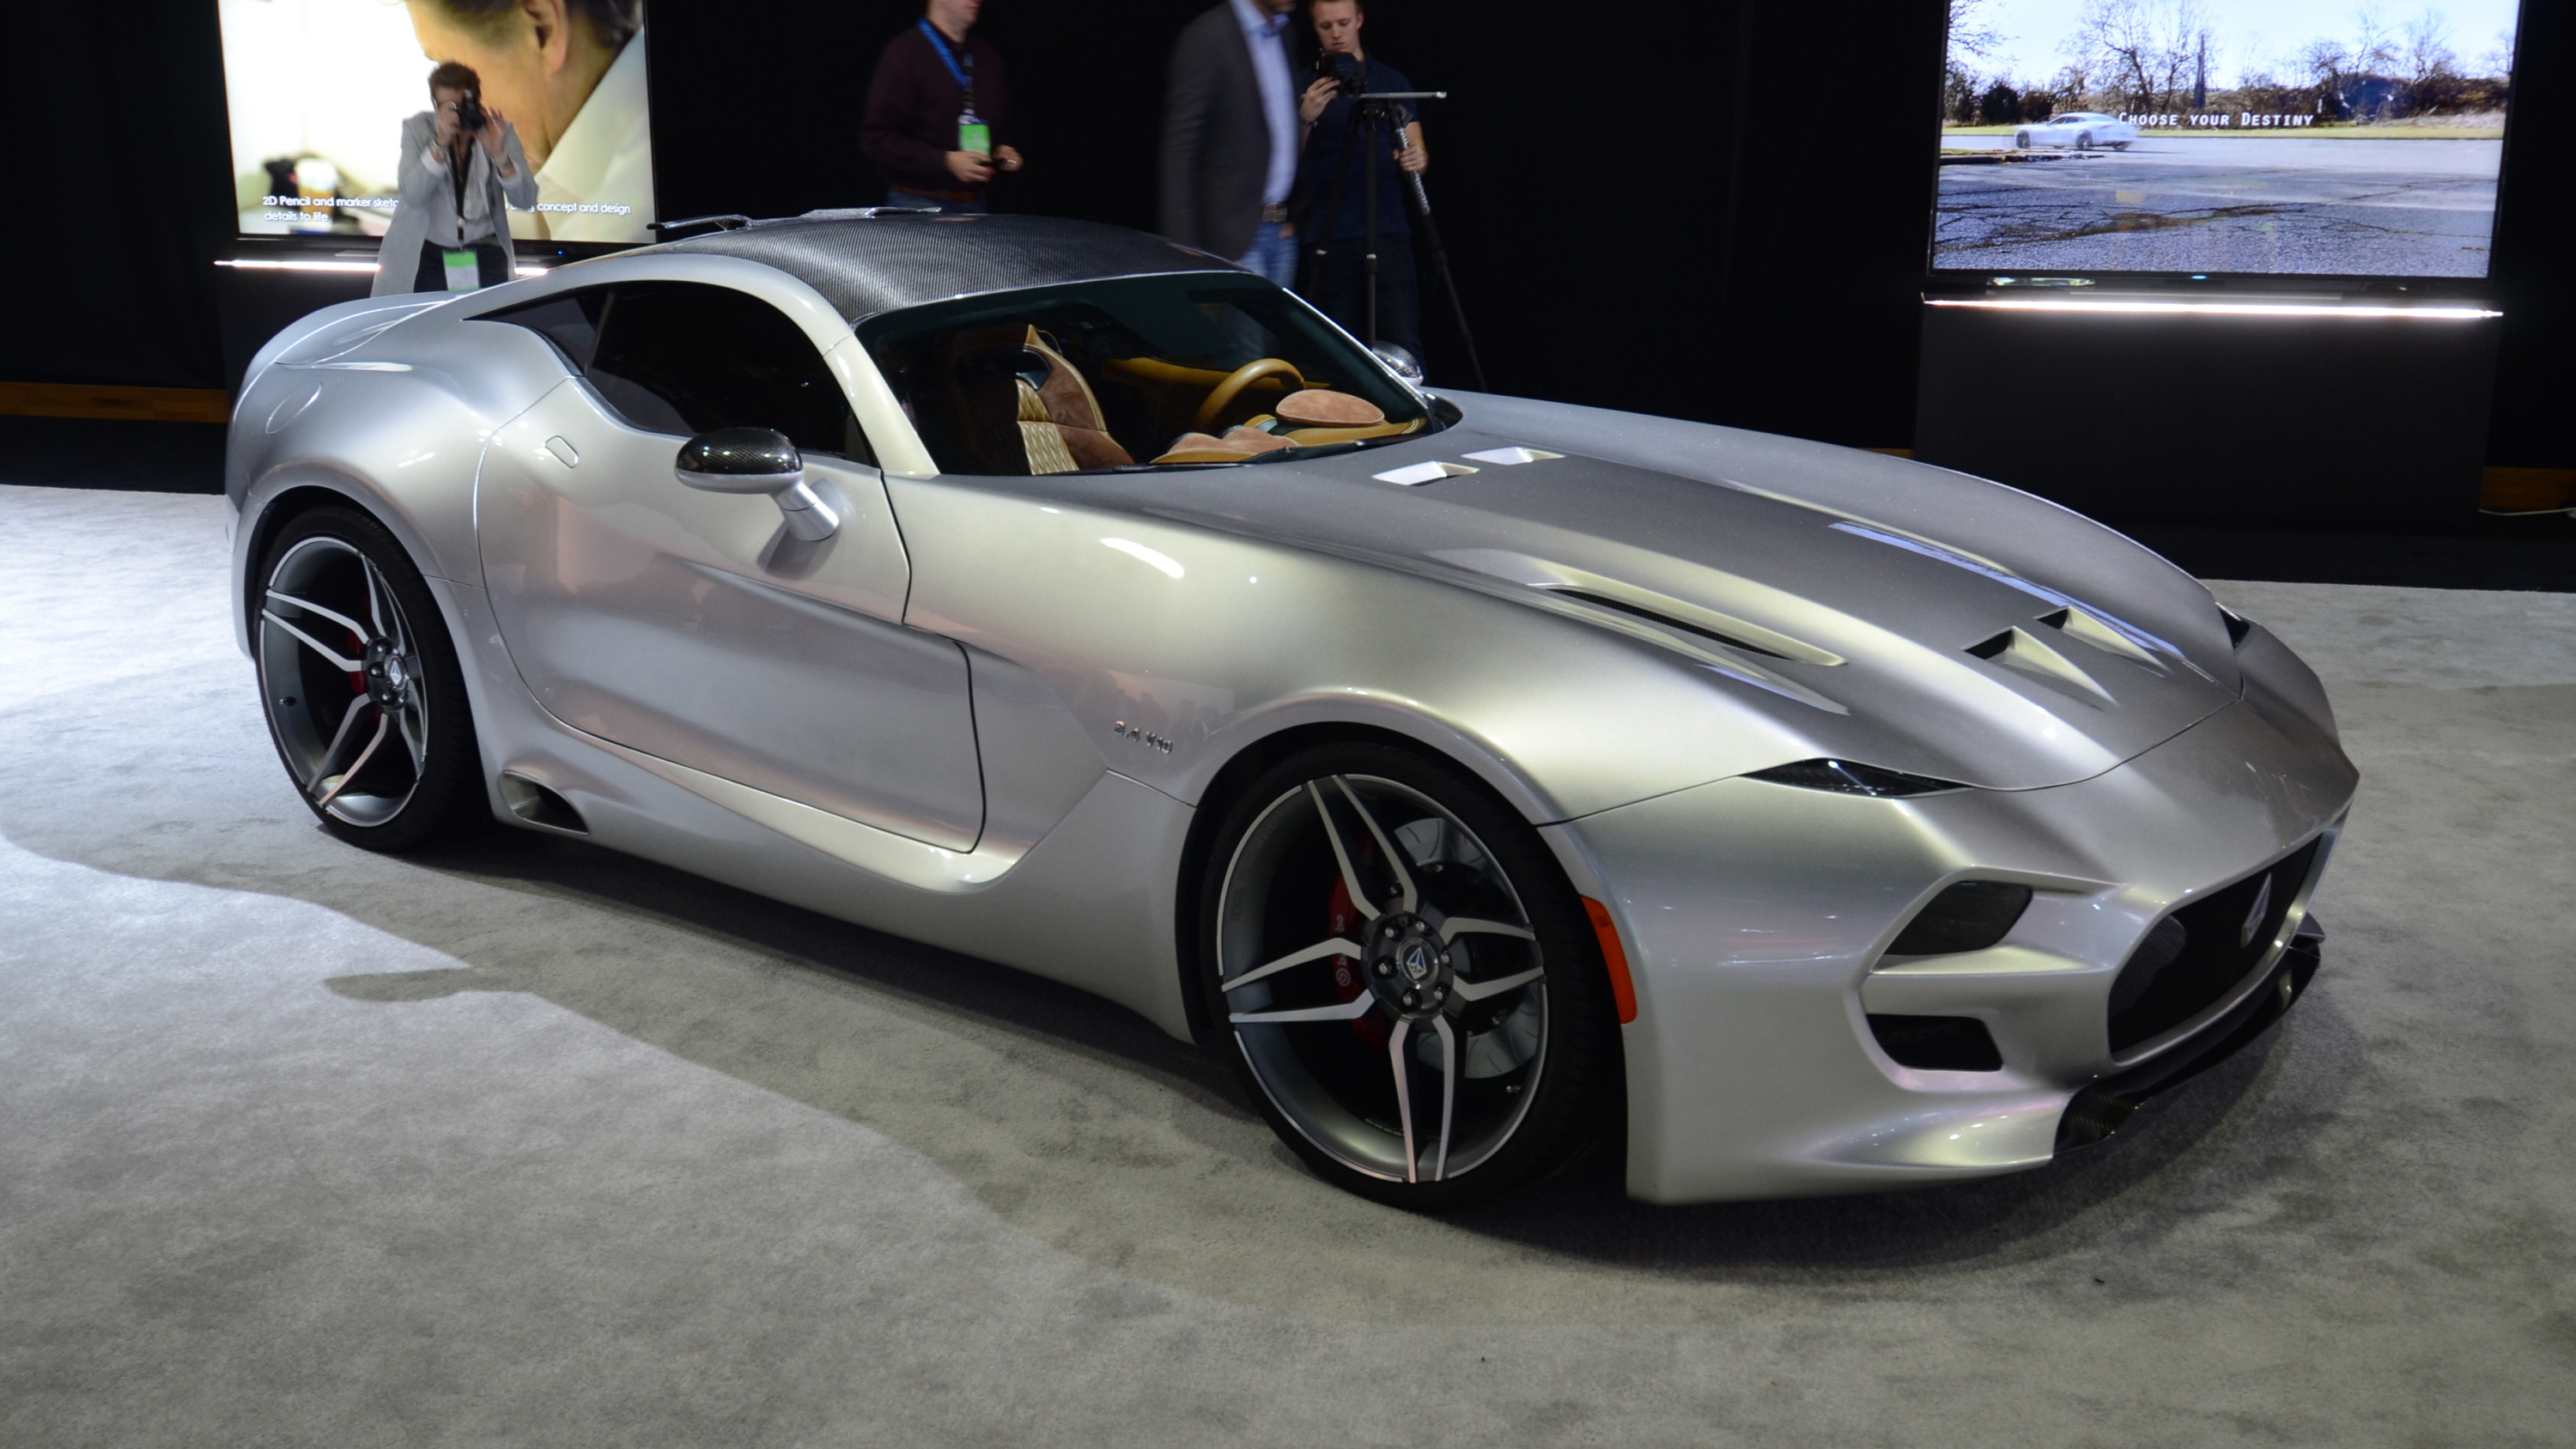 Tg Chats With The Men Behind The Vlf Force 1 Top Gear